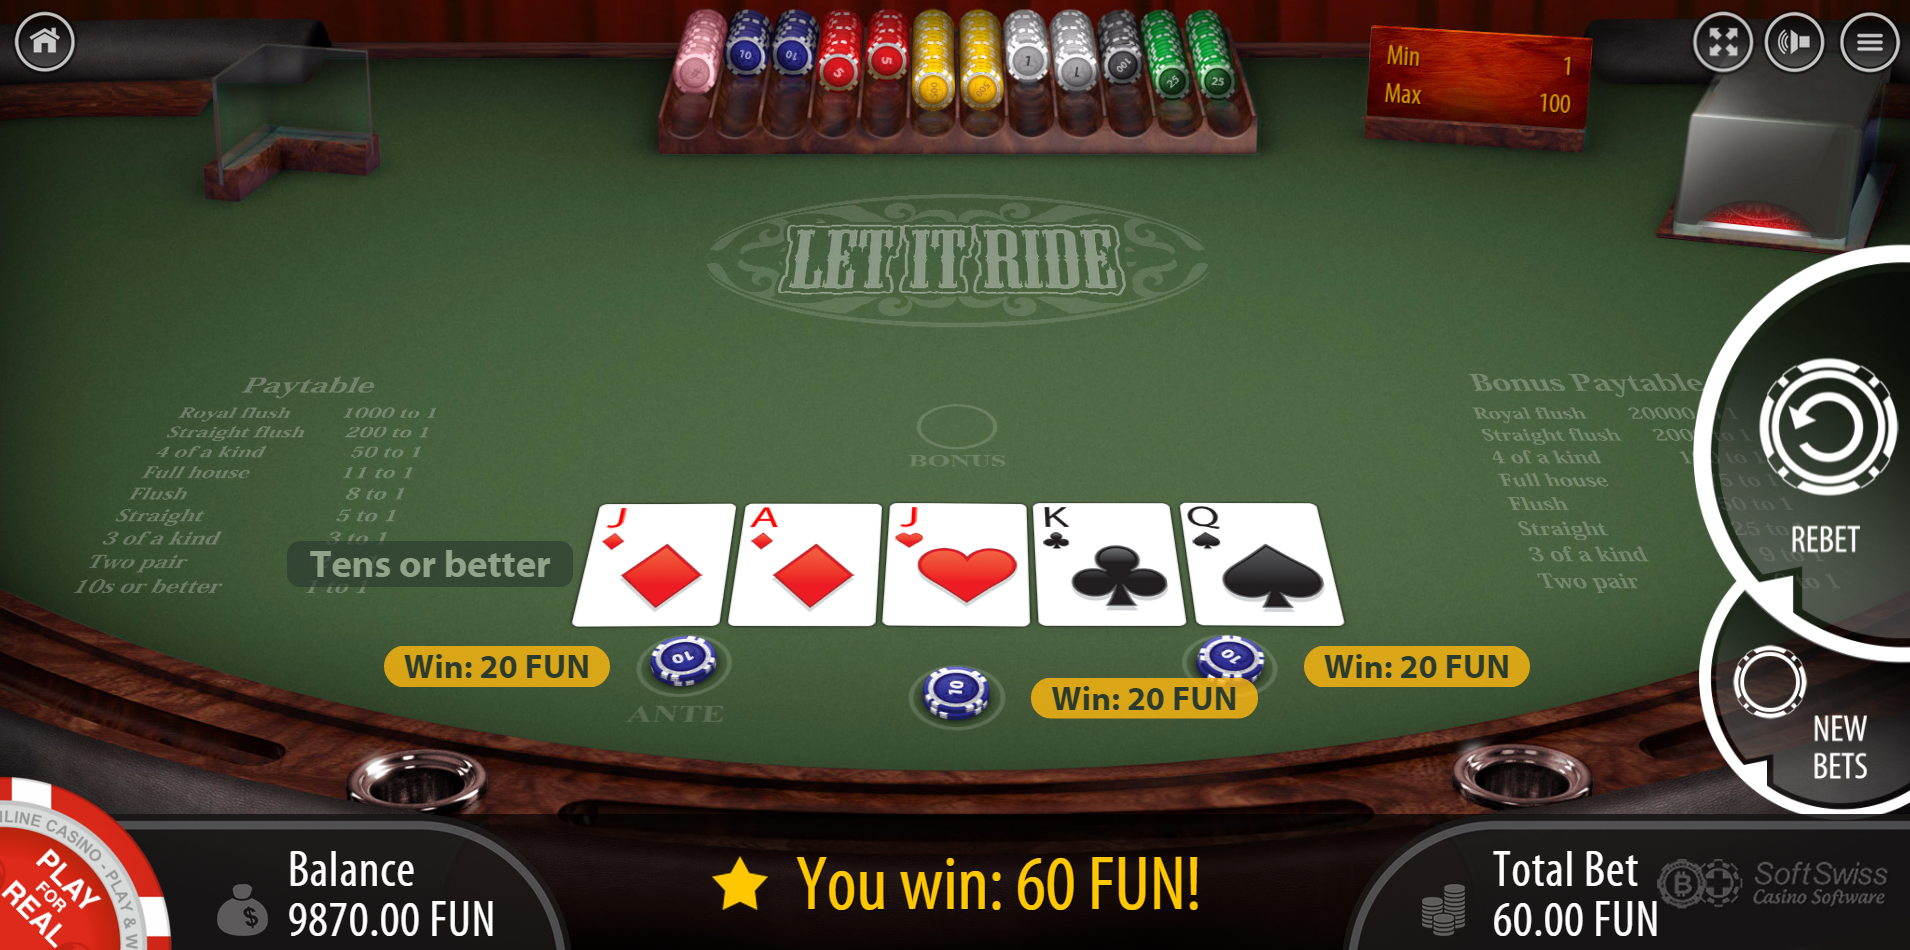 Let it ride casino game odds bahamas casino in